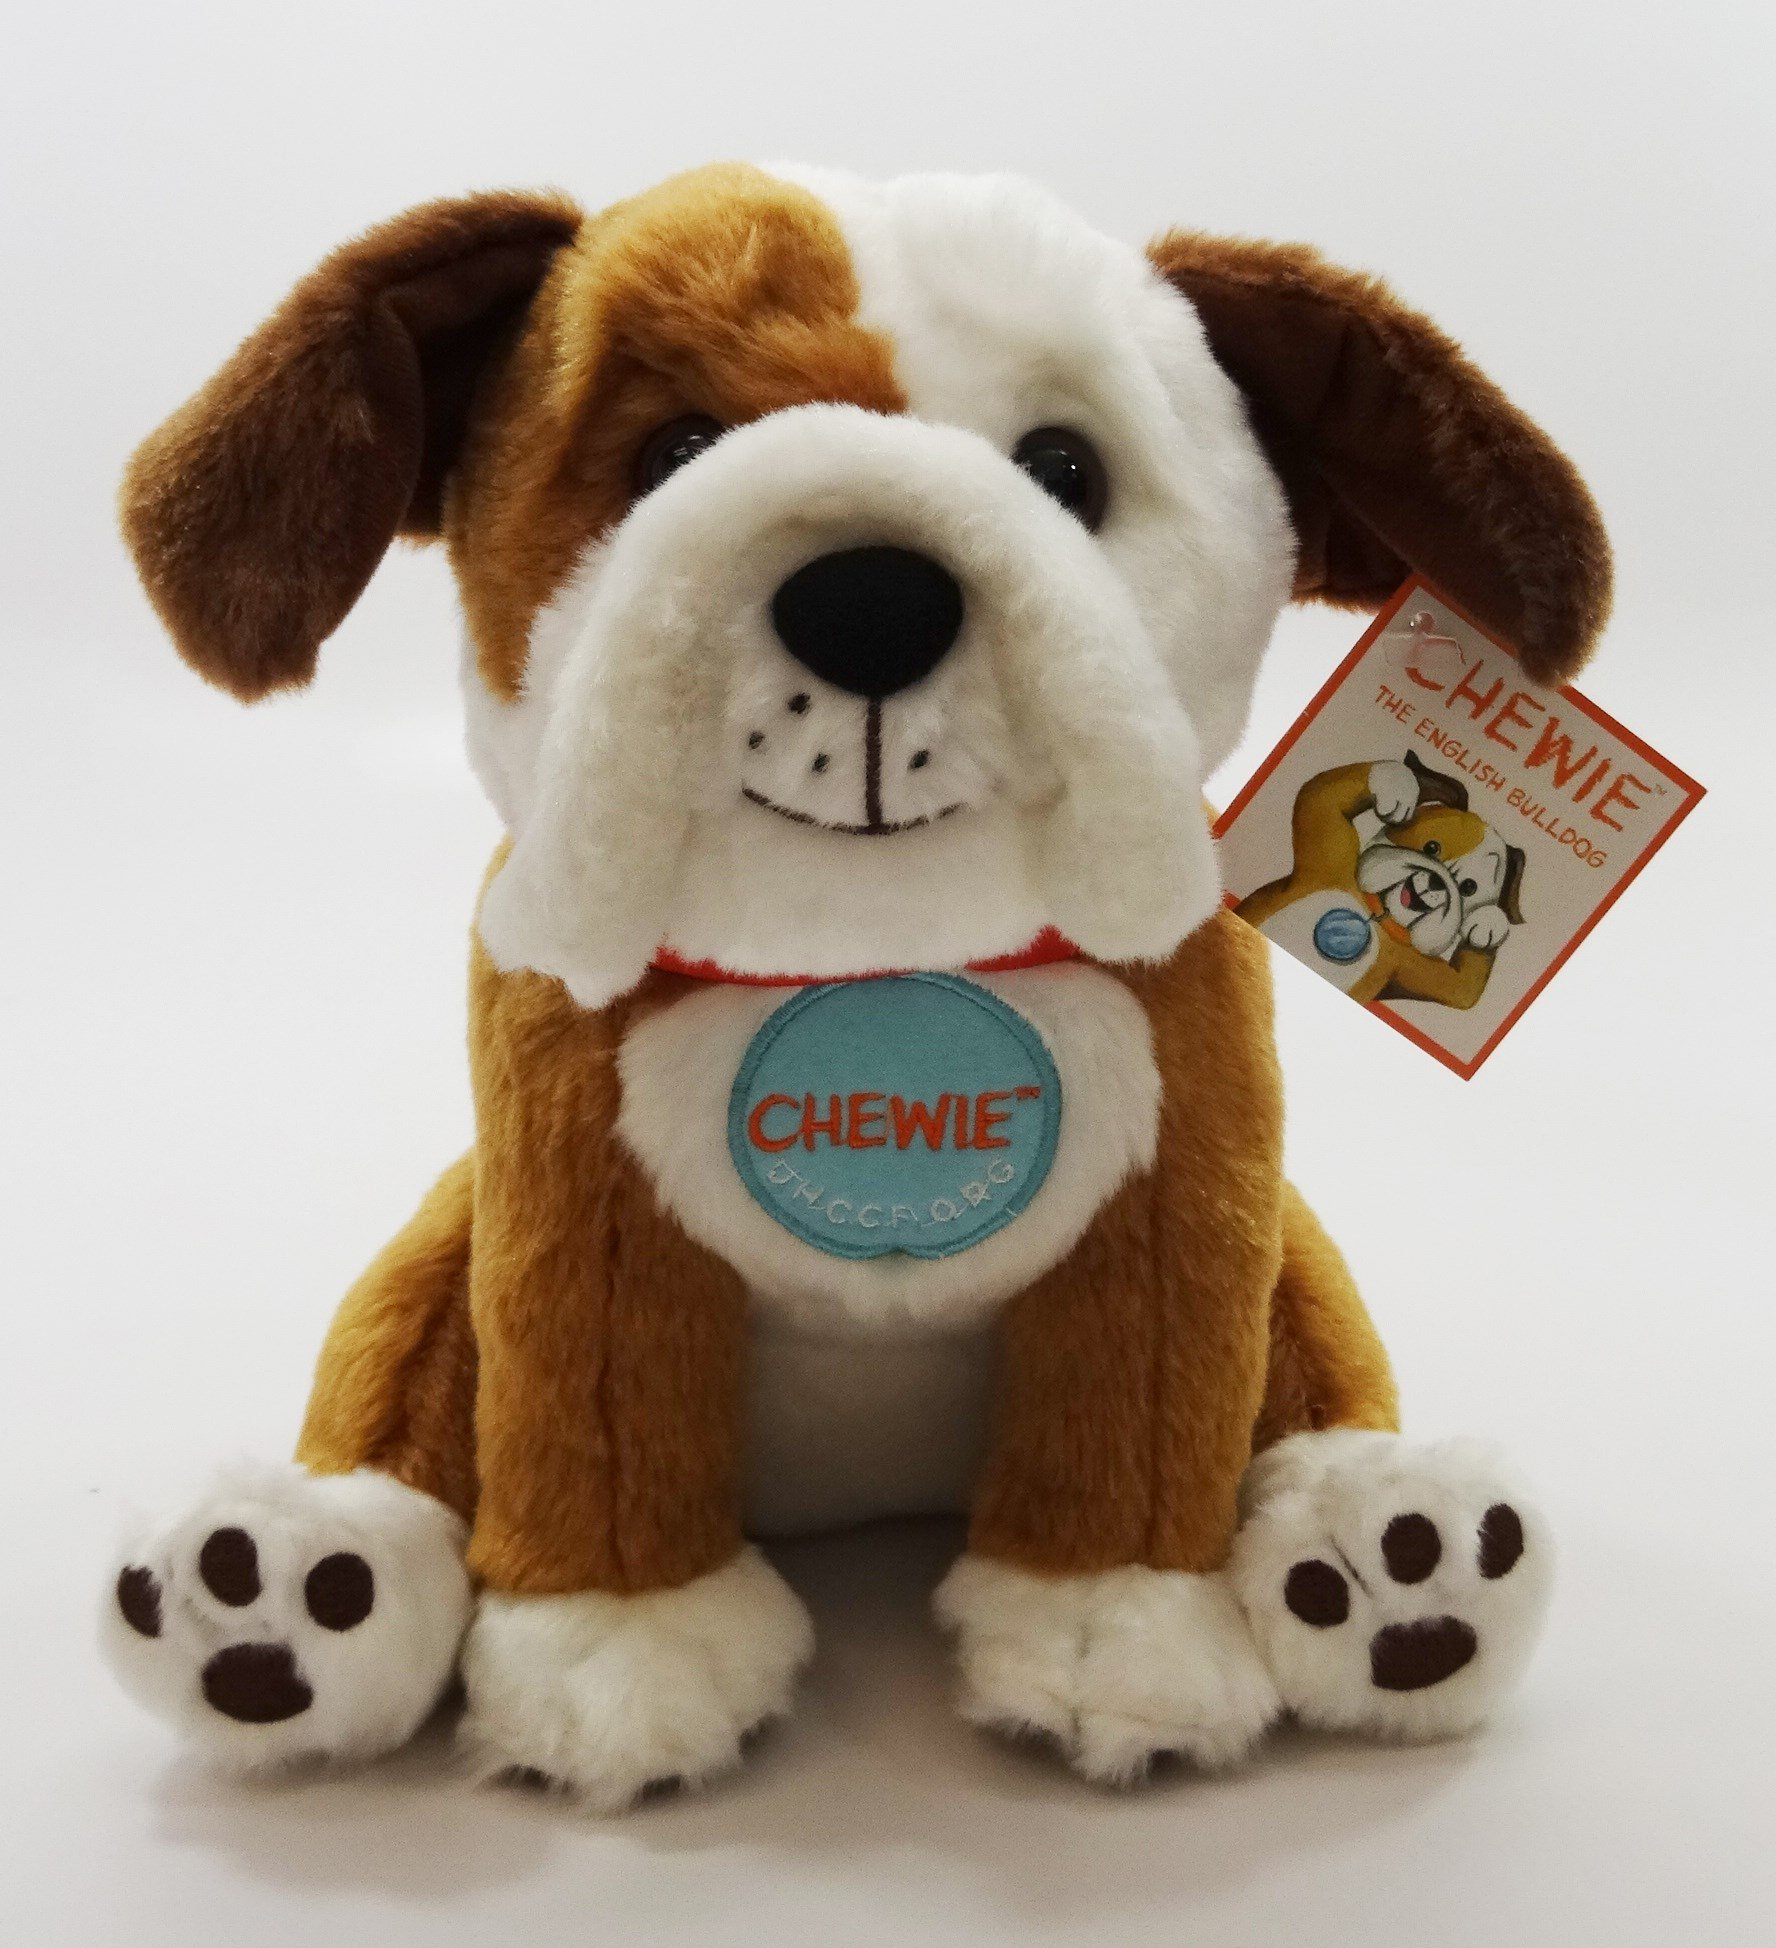 Chewie the English Bulldog (Photo courtesy Consumer Product Safety Commission)